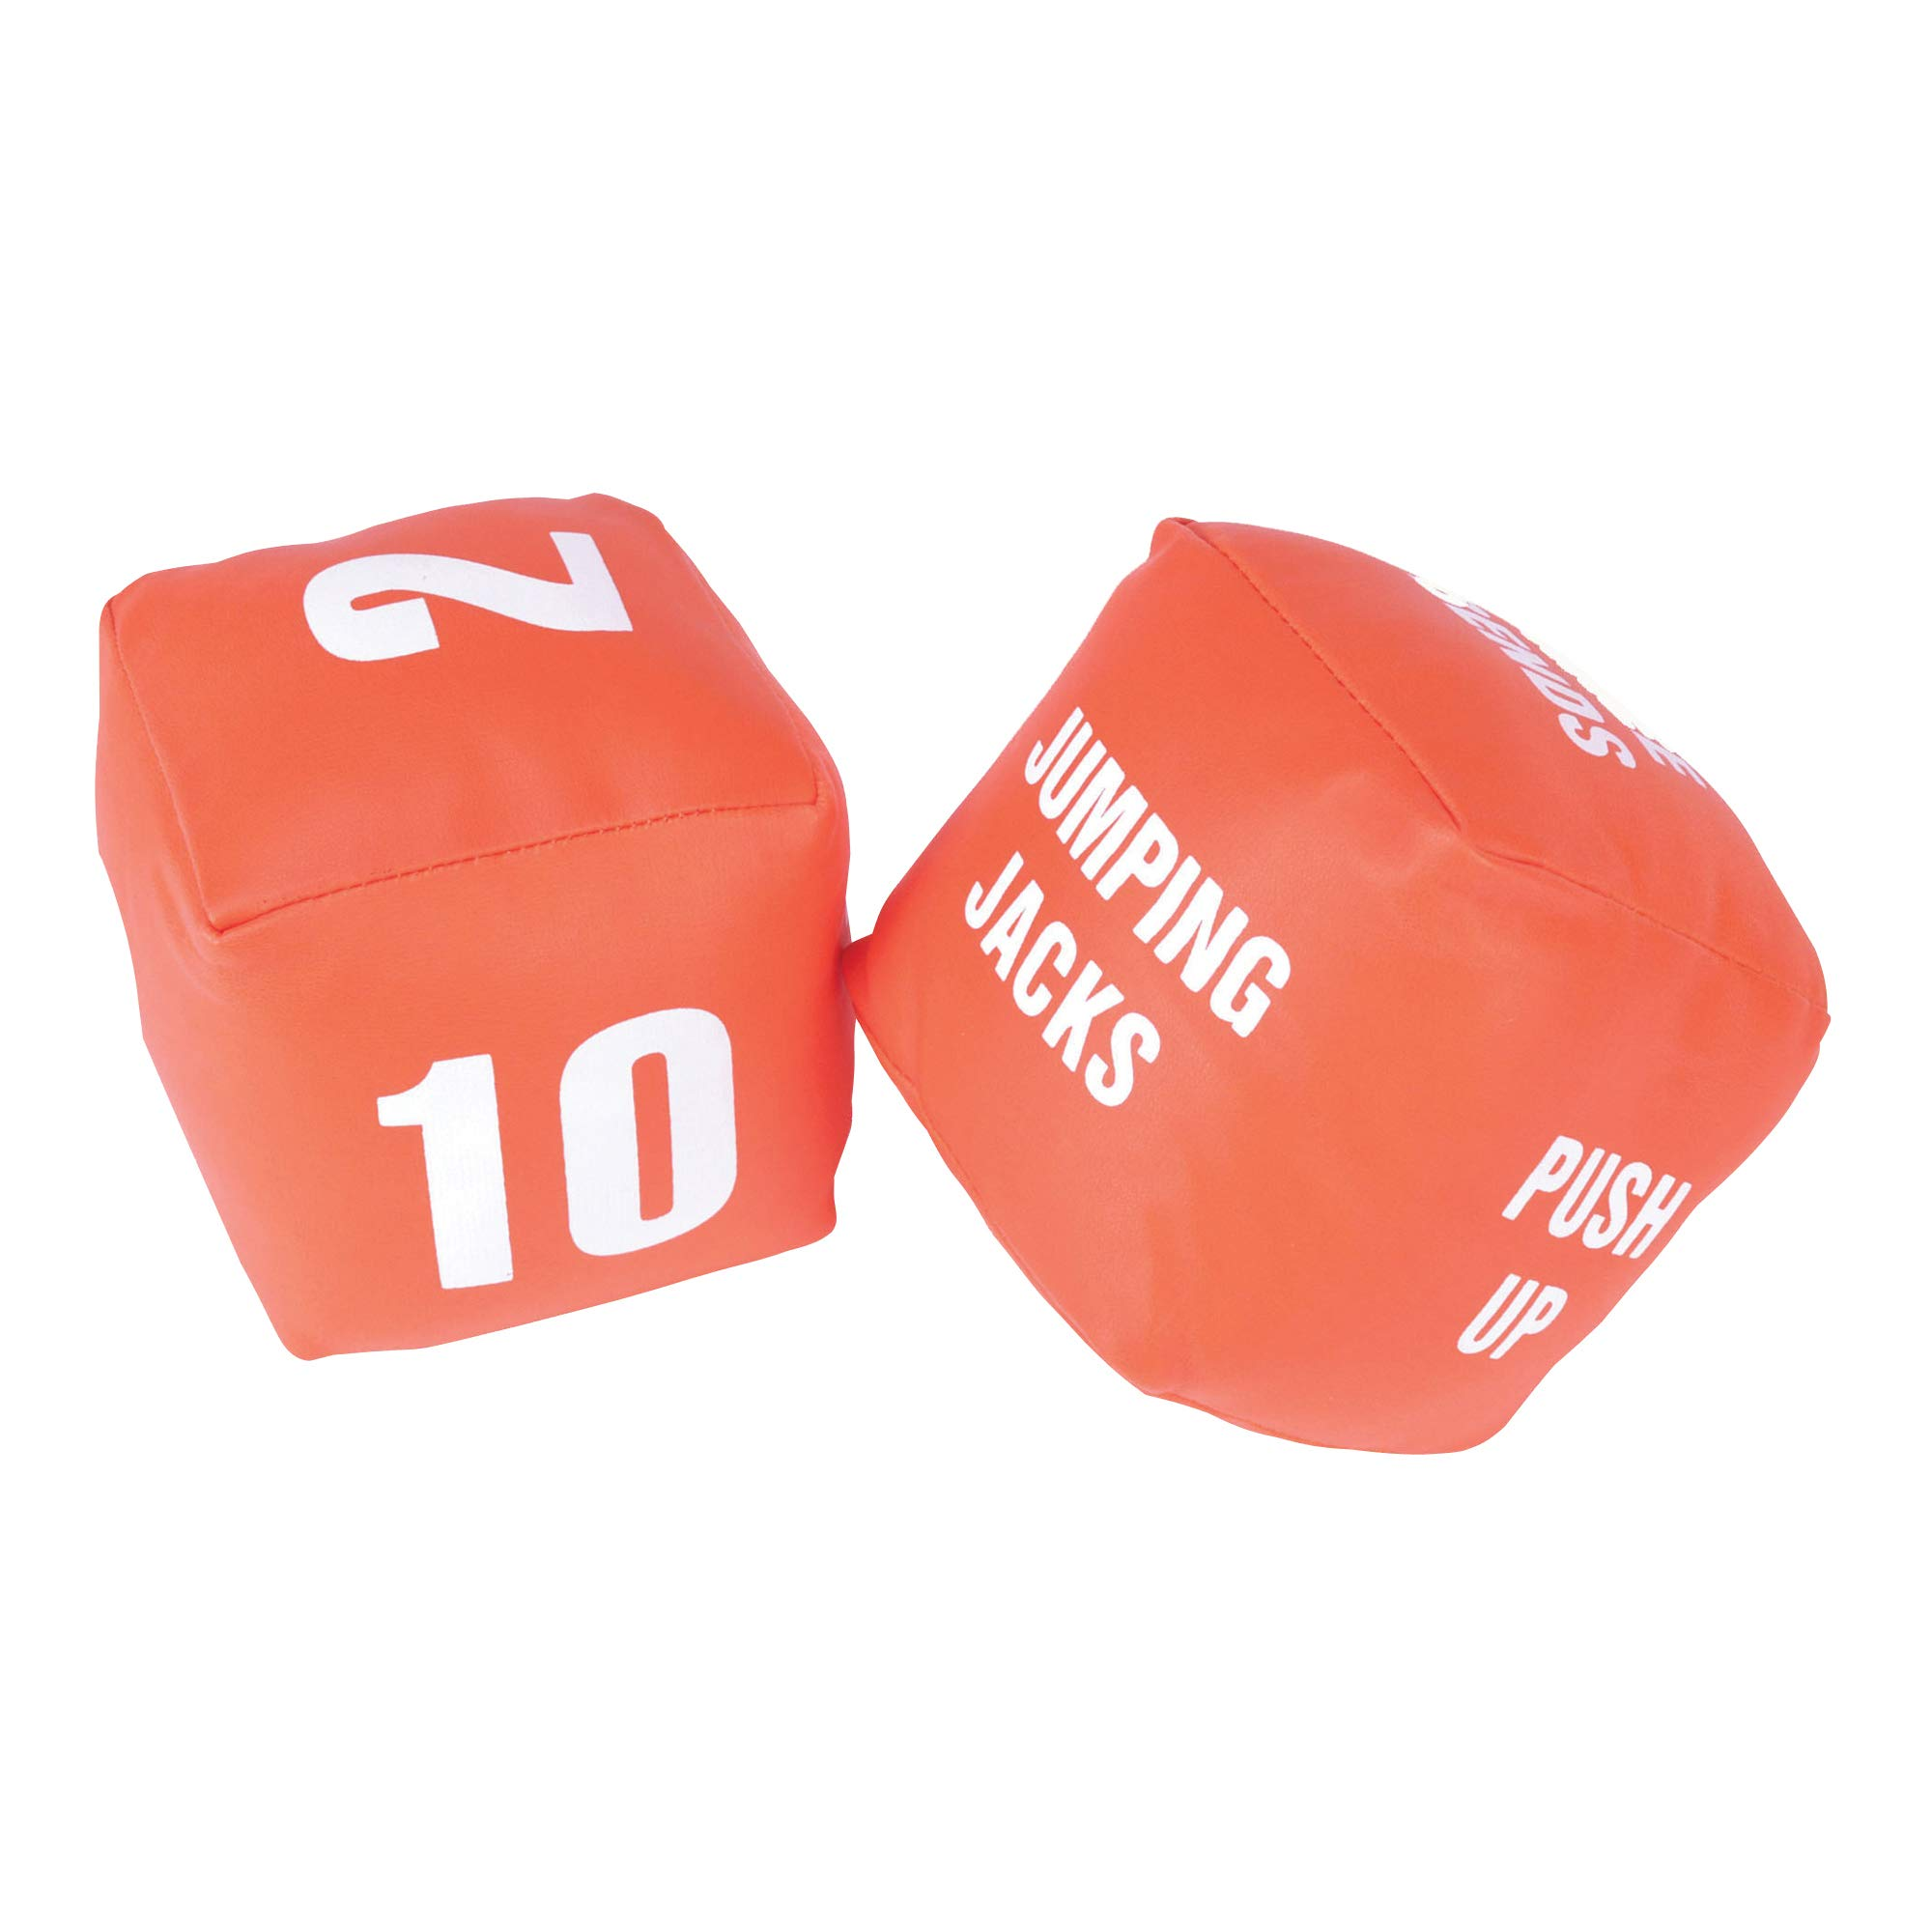 American Educational Products Cubes with Actions Numbers Fitness Dice, Set of 2 by American Educational Products